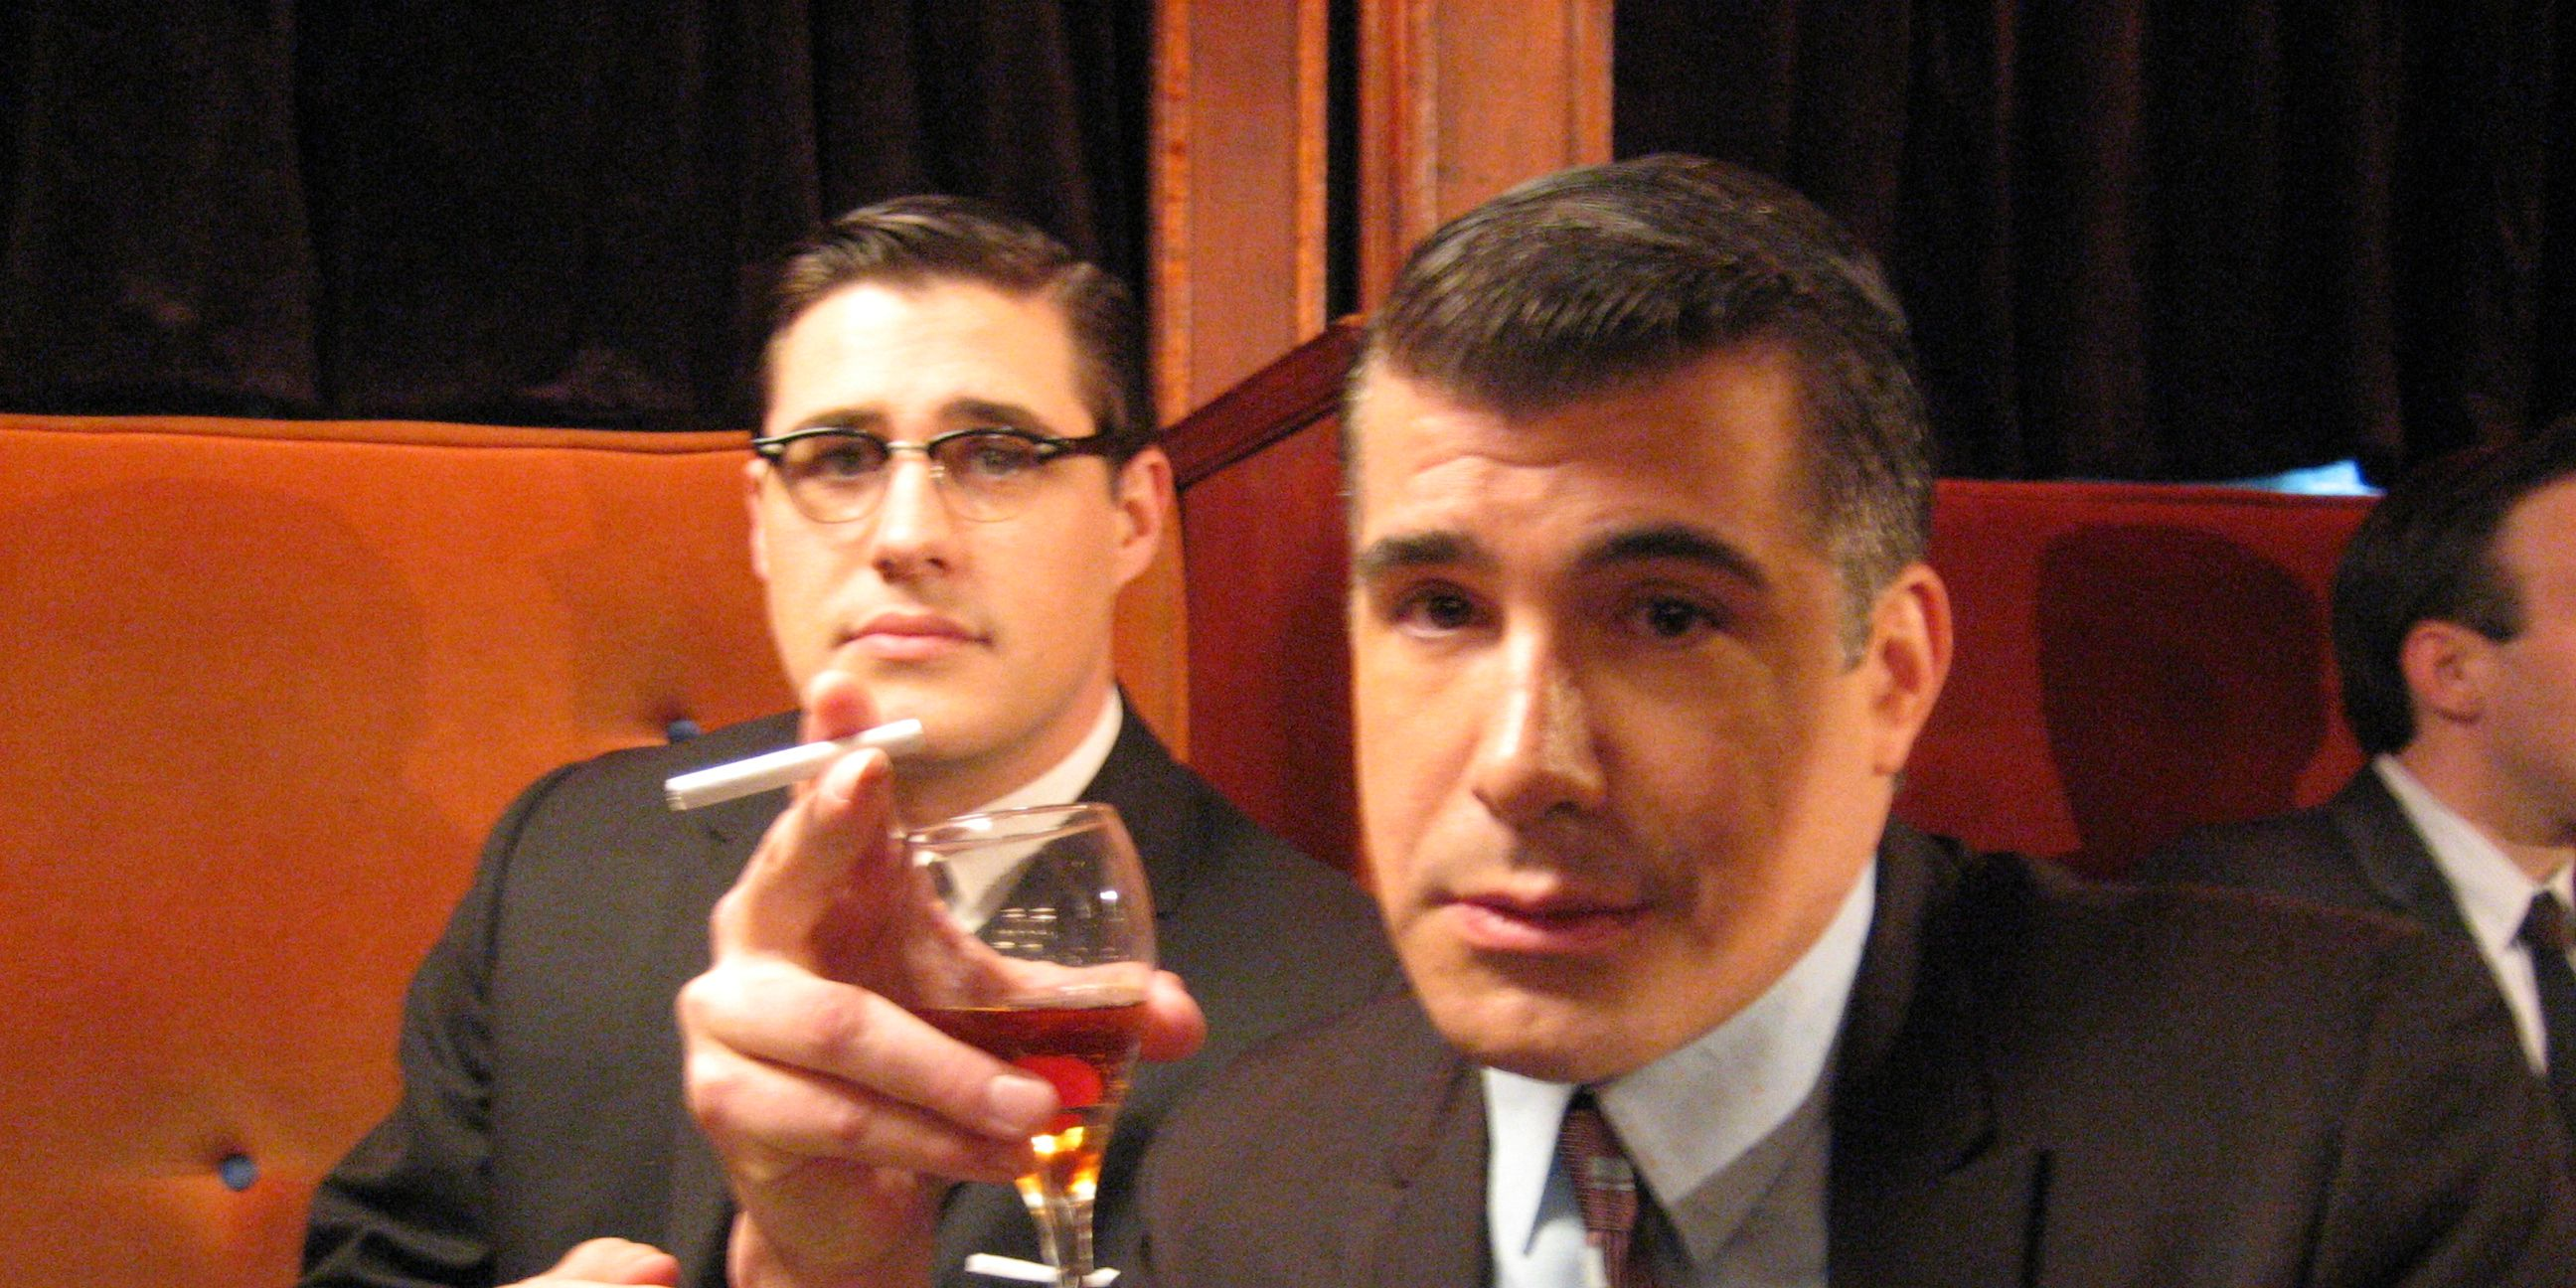 "<p>This photo, snapped during the filming of Mad Men's pilot, features a prop that wouldn't haunt Bryan Batt. ""Notice the cherry in Sal's drink,"" he tells Esquire. ""Alan [Taylor] liked when I made a bit out of popping the cherry in my mouth on my line. That scene had numerous set ups and endless takes. I must have eaten 3 dozen cherries. Note to self: if possible avoid eating anything while filming. Rich [Sommer, seen here] later learned that lesson with donuts in Season 2.""</p>"